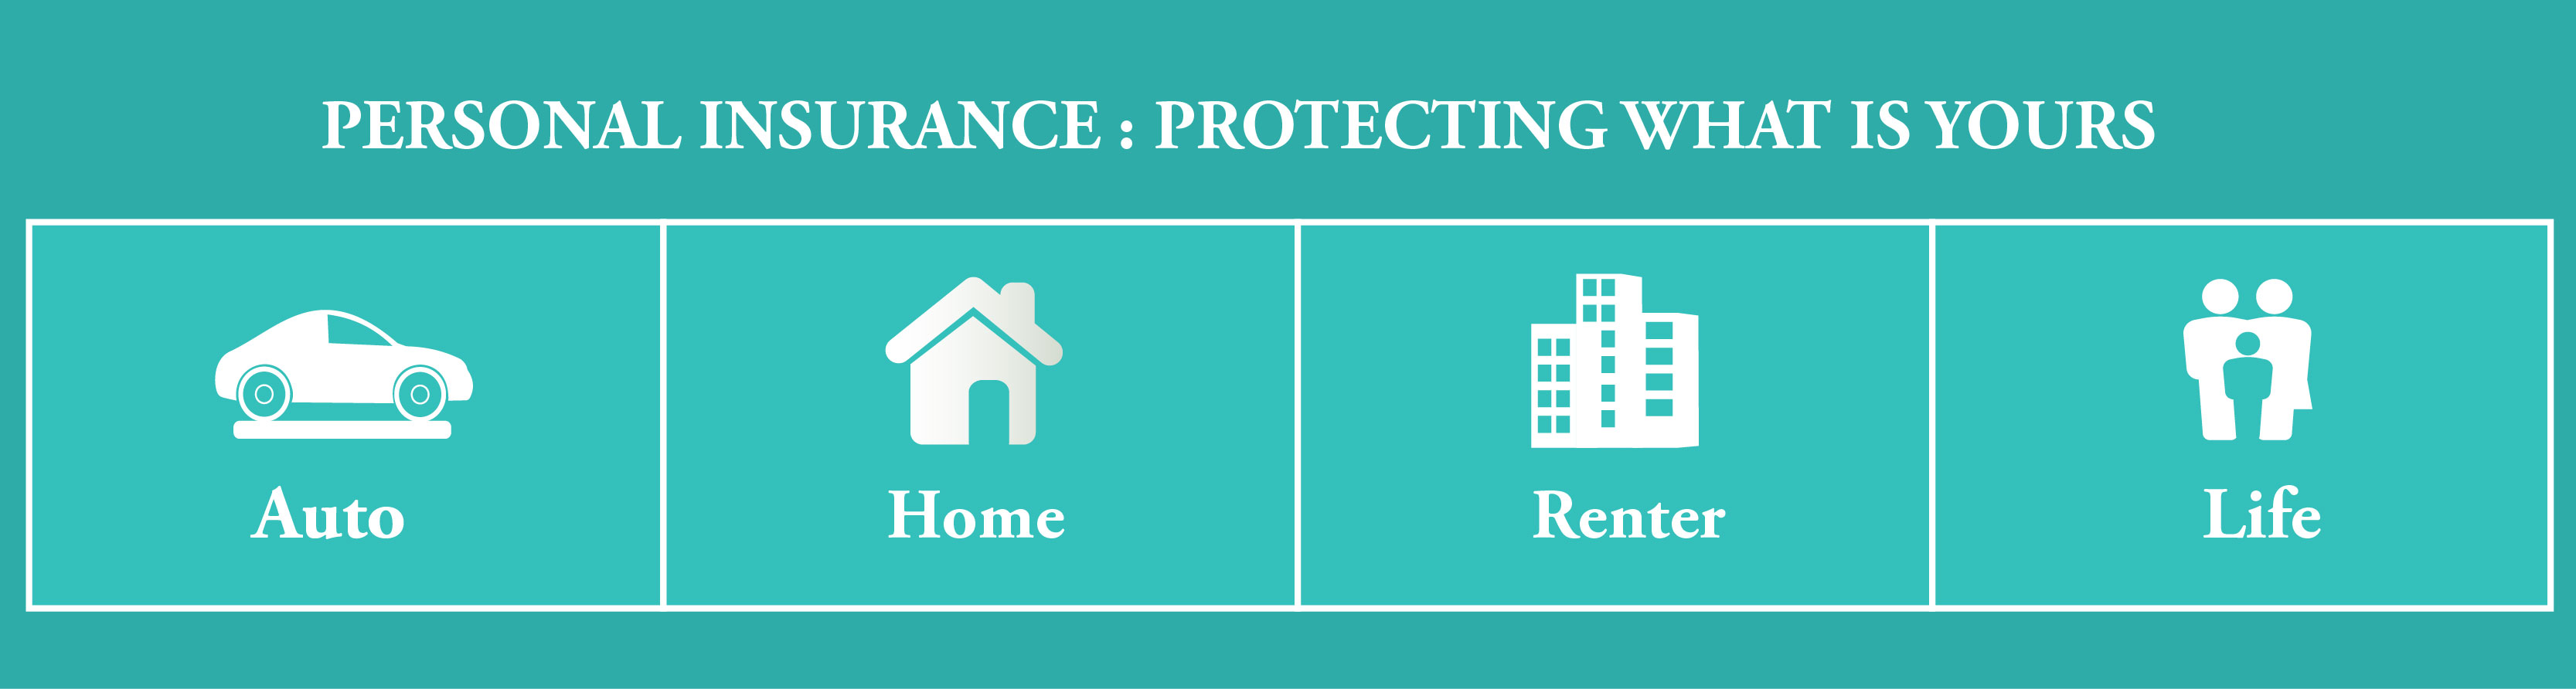 Personal Insurance Page